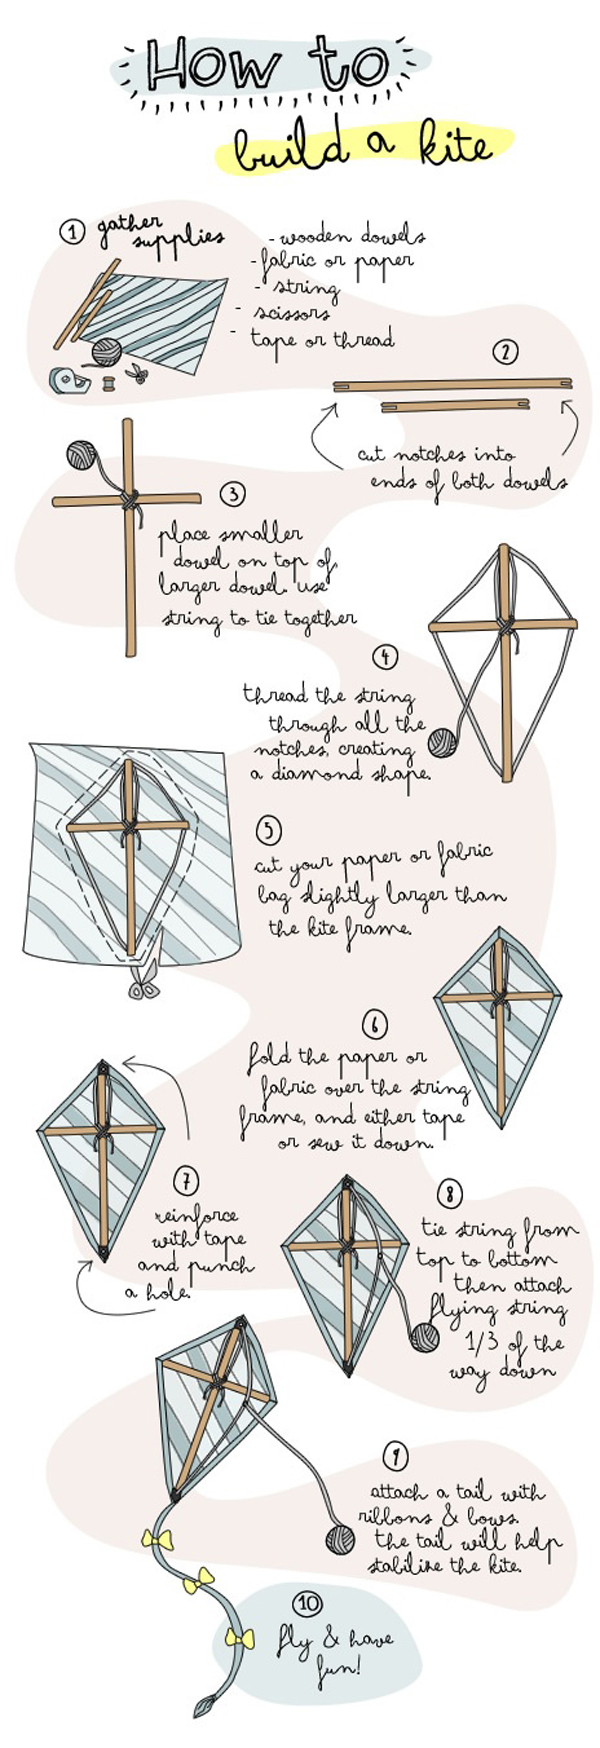 how-to-build-a-kite